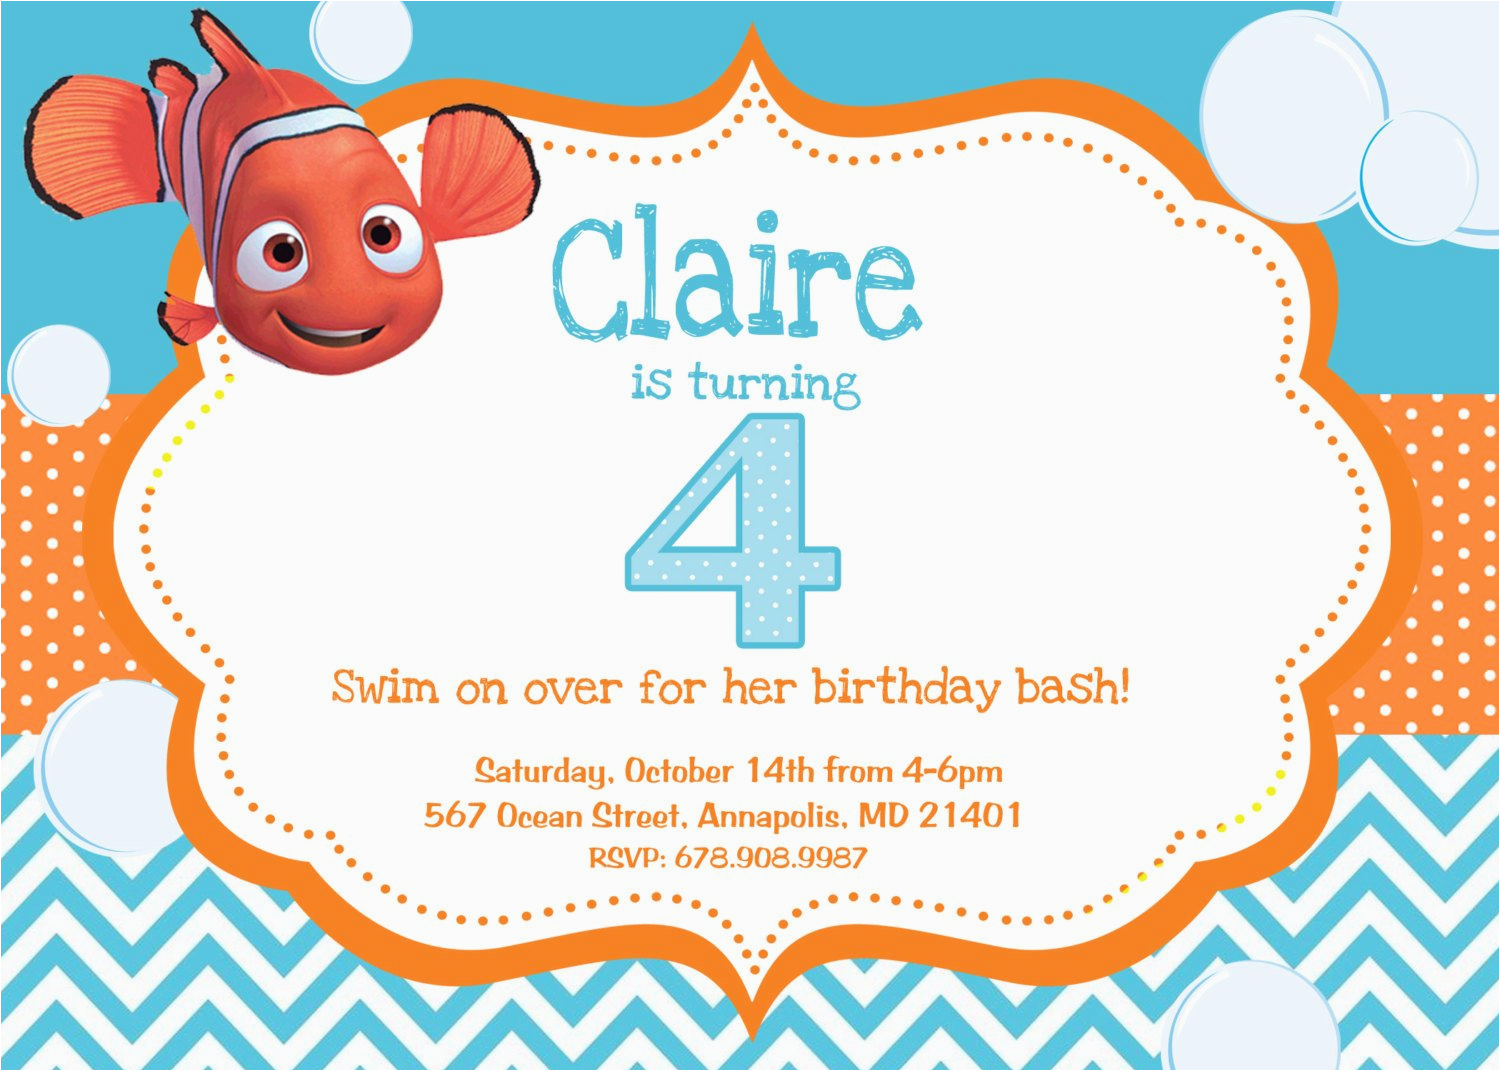 Finding Nemo Birthday Party Invitations Finding Nemo Birthday Party Invitation Digital File